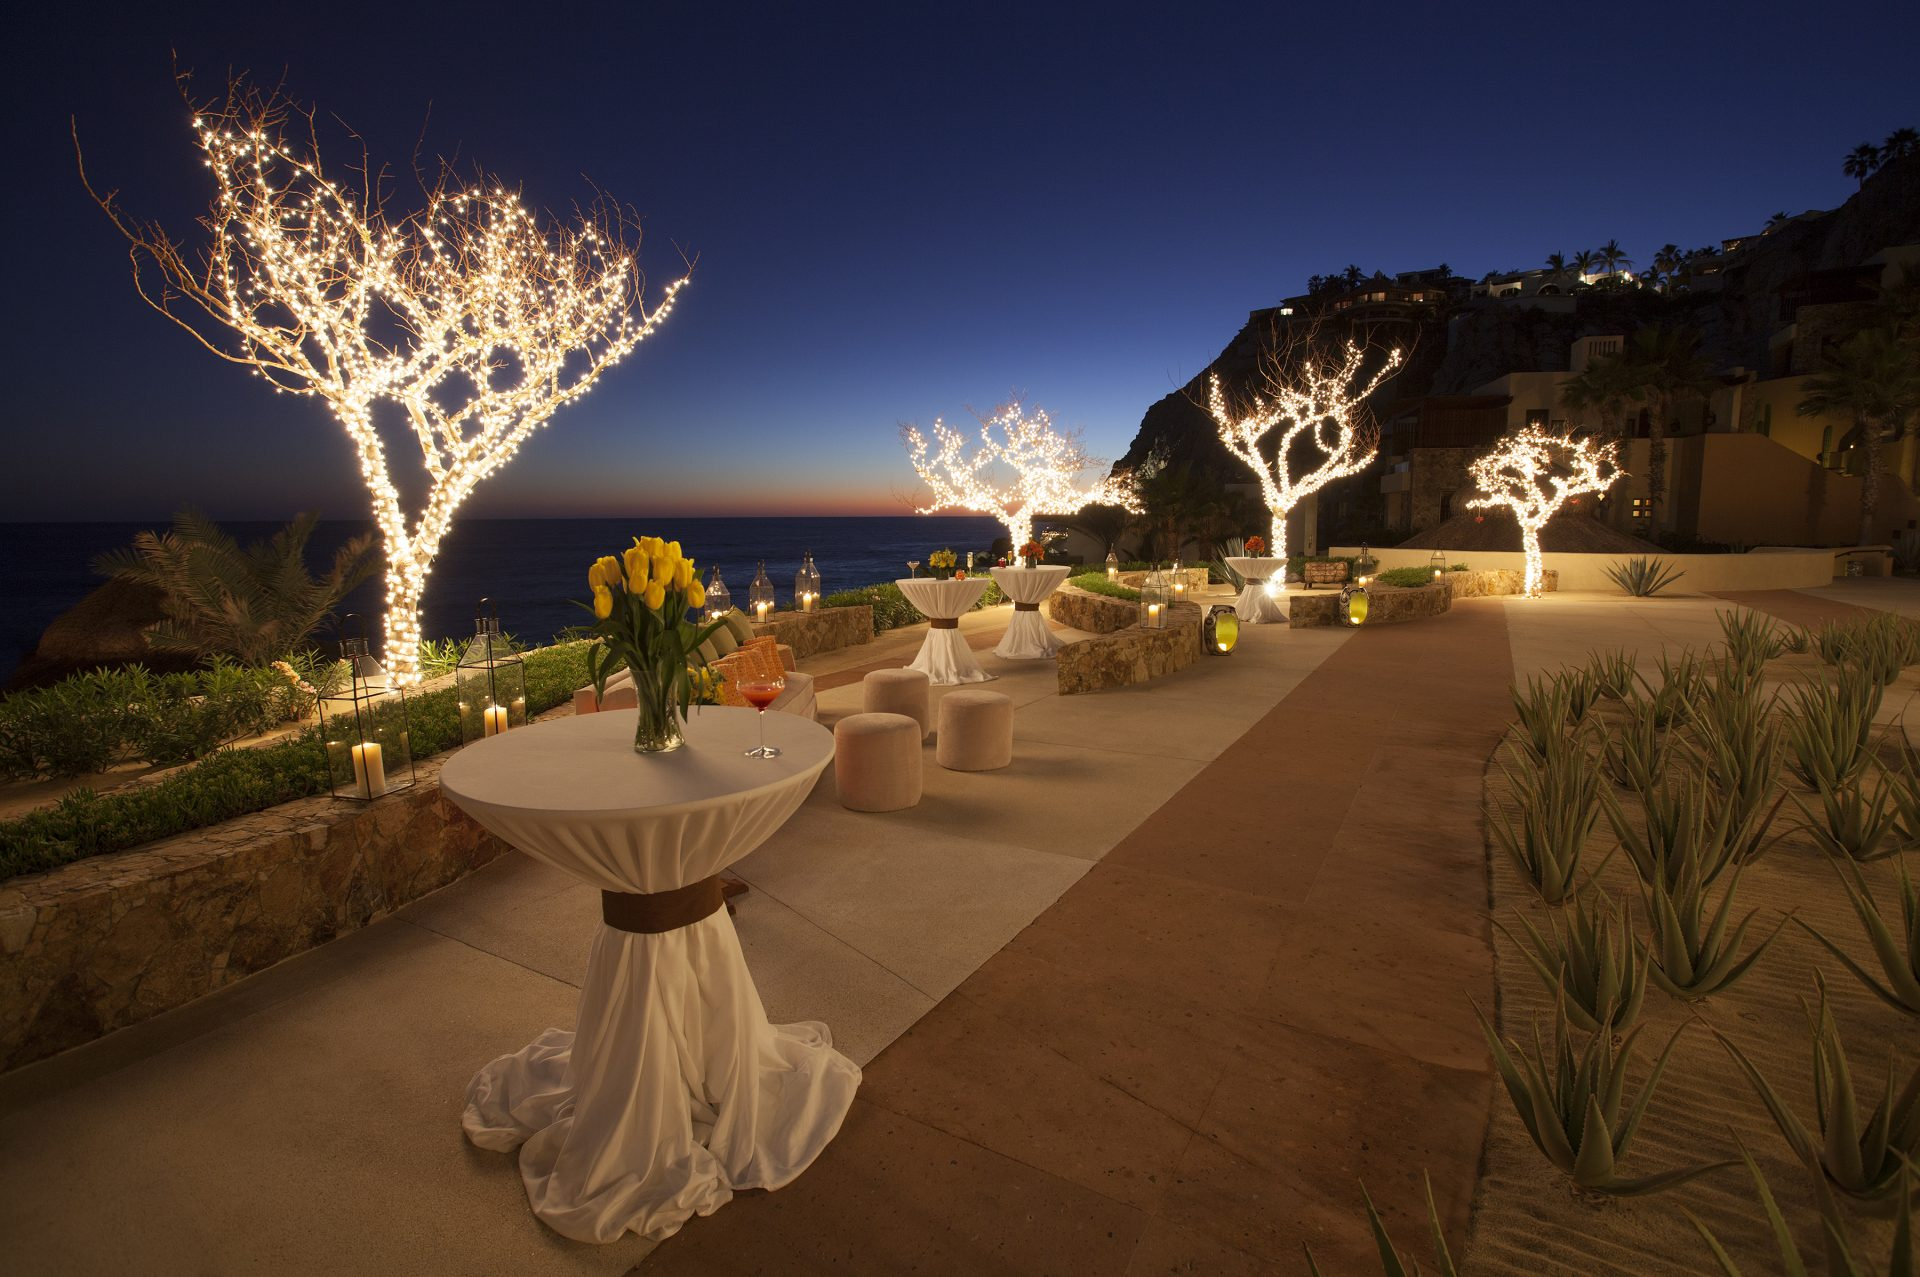 Amazing Pai Pai dusk at The Resort at Pedregal